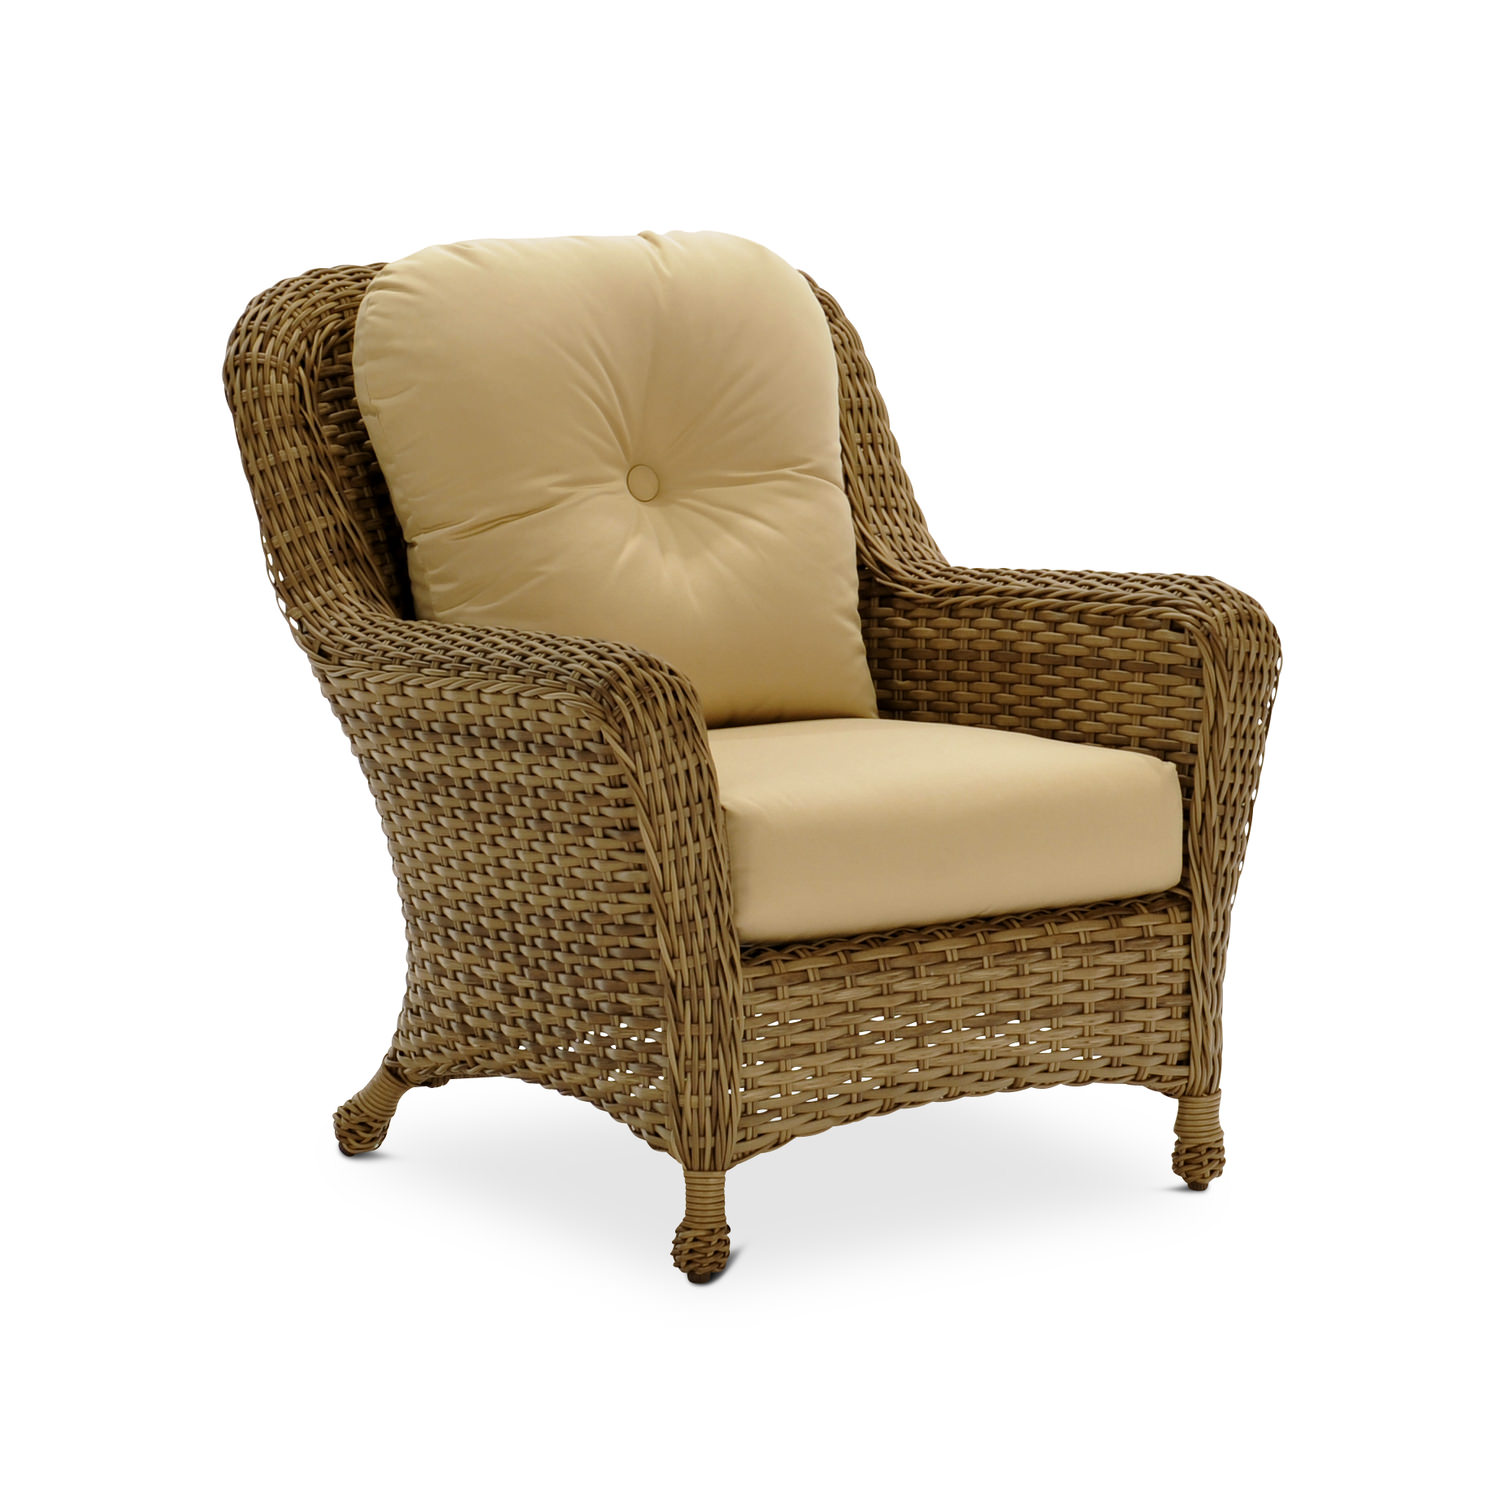 Wicker warehouse outdoor wicker rattan furniture for Wicker and rattan indoor furniture